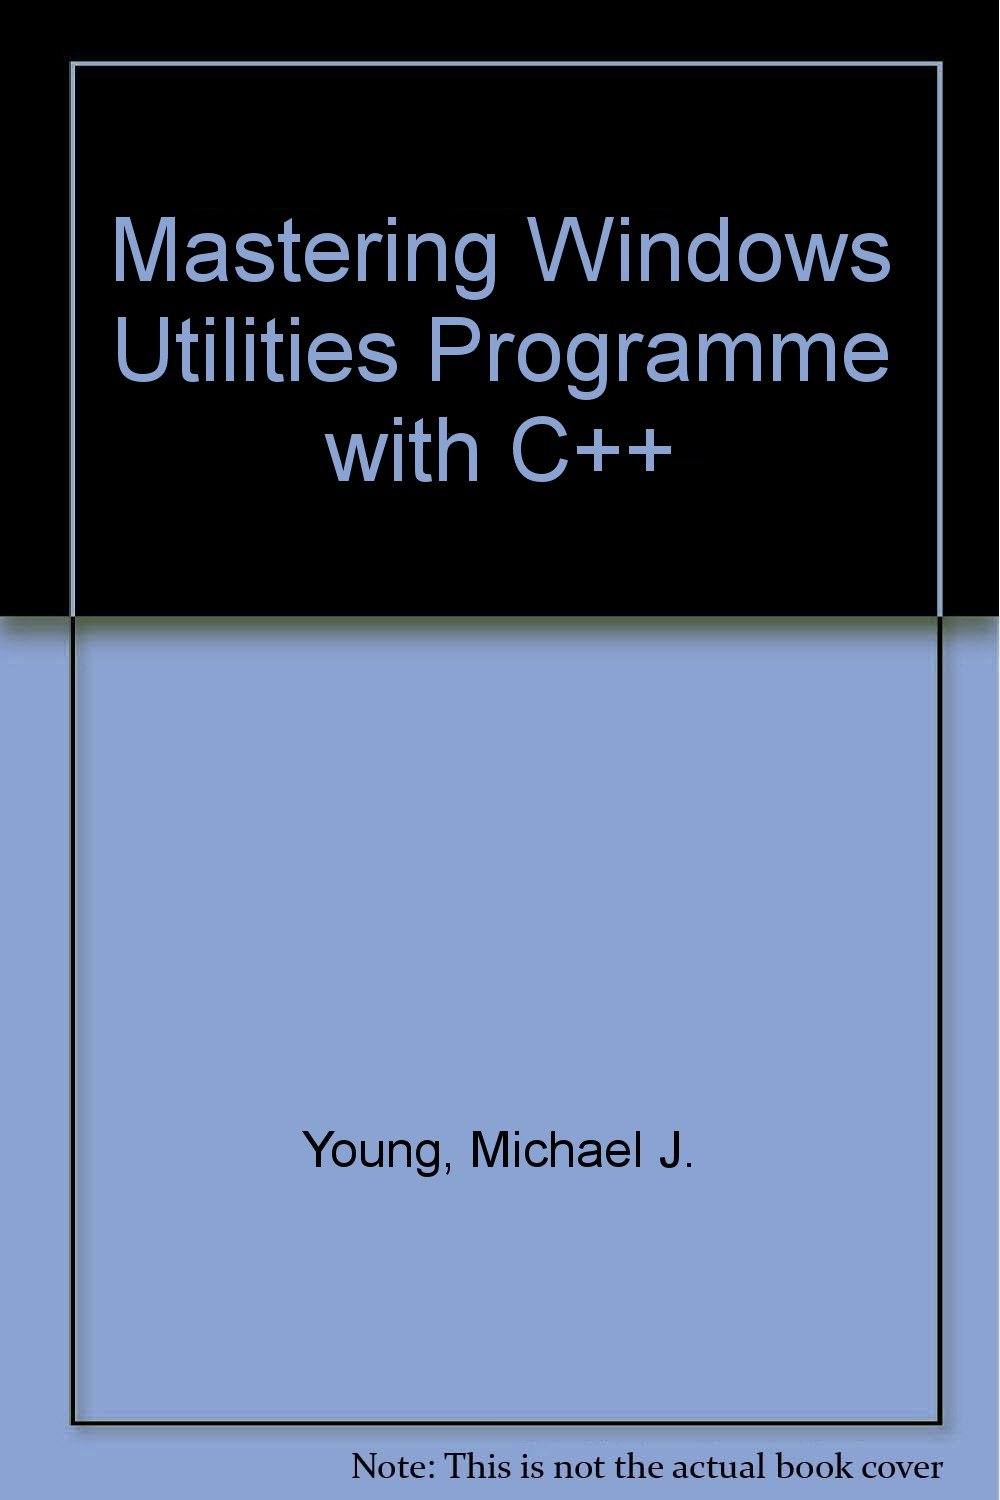 Mastering Windows Utilities Programming With C++